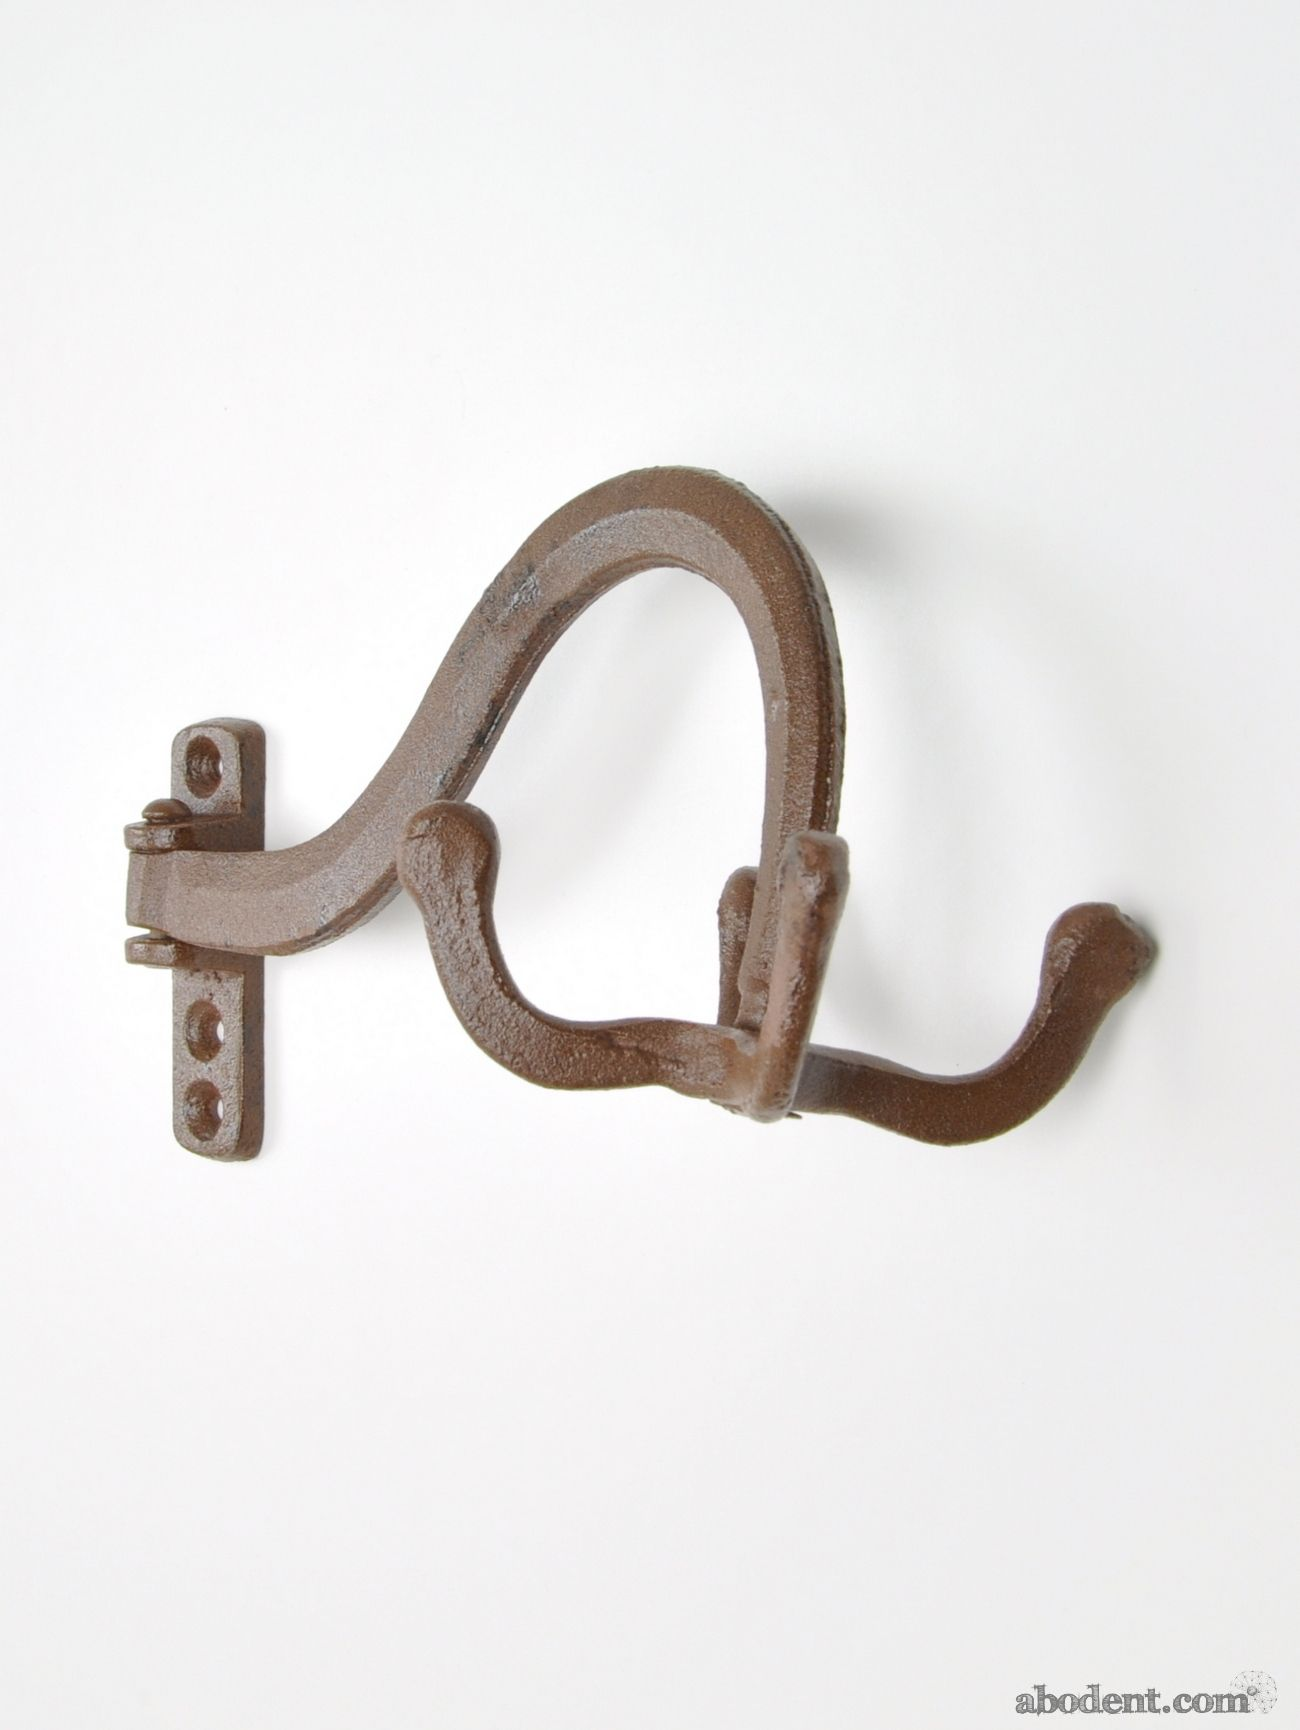 Carousel Coat Hook (Unique Coat Hook) | Wall Mounted Coat Hooks \u0026 Coat Racks & Carousel Coat Hook | Closet | Pinterest | Coat hooks wall mounted ...